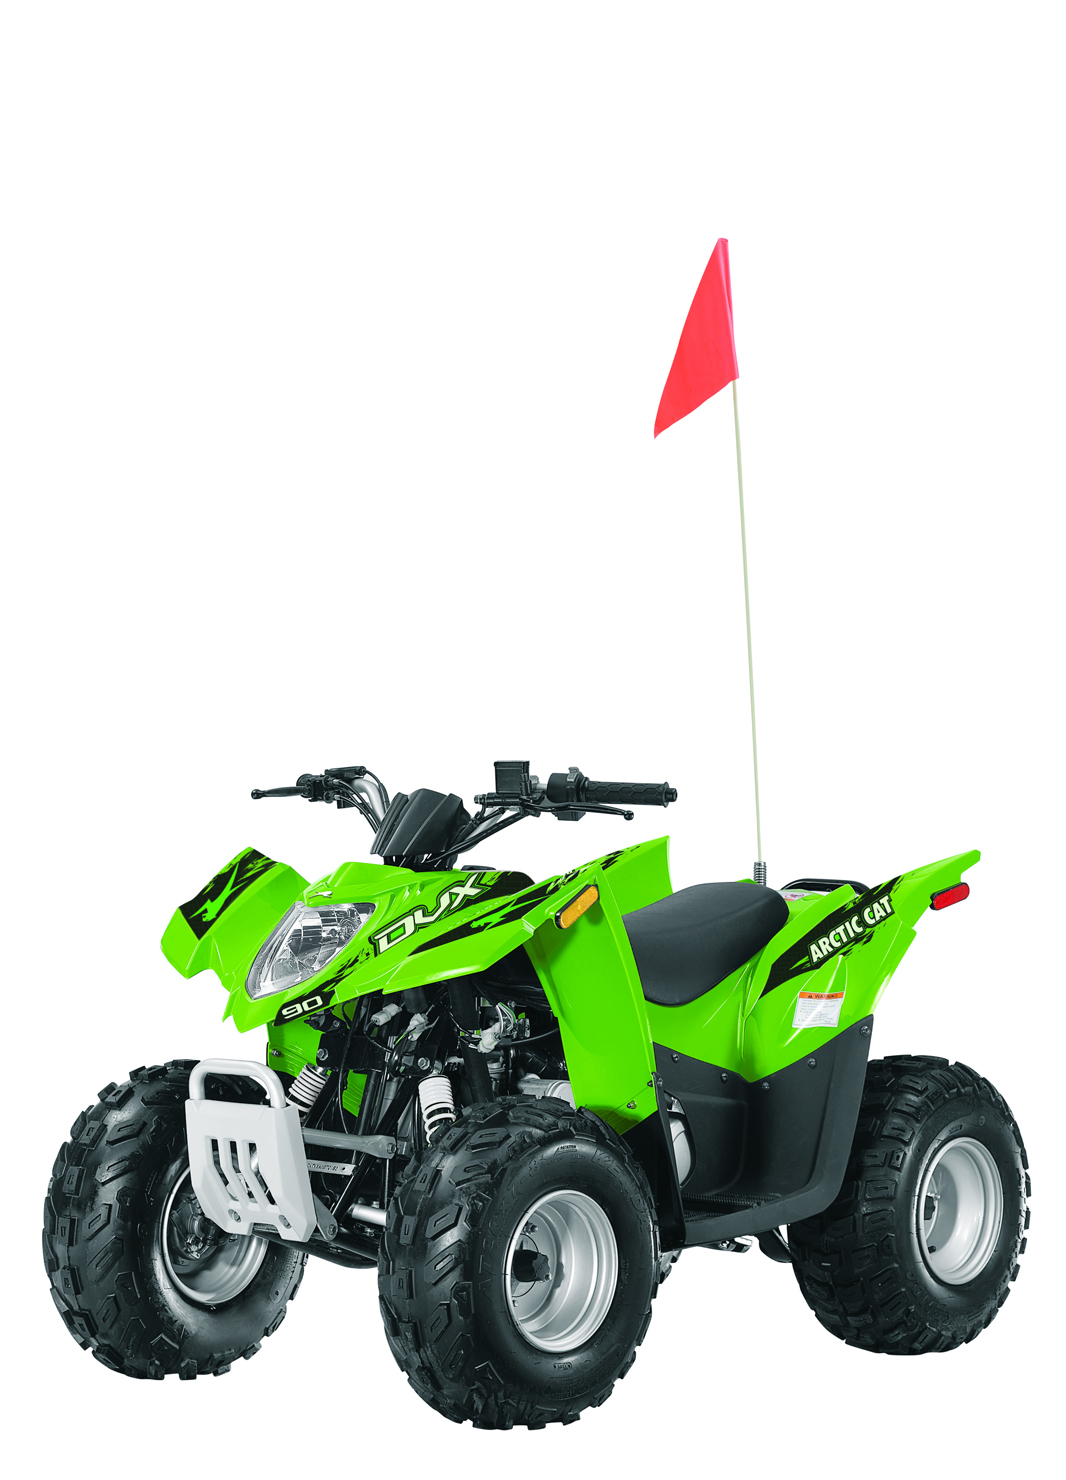 ... UTV's & Accessories > New Arctic Cat ATV's > 2015 Arctic Cat 90 DVX